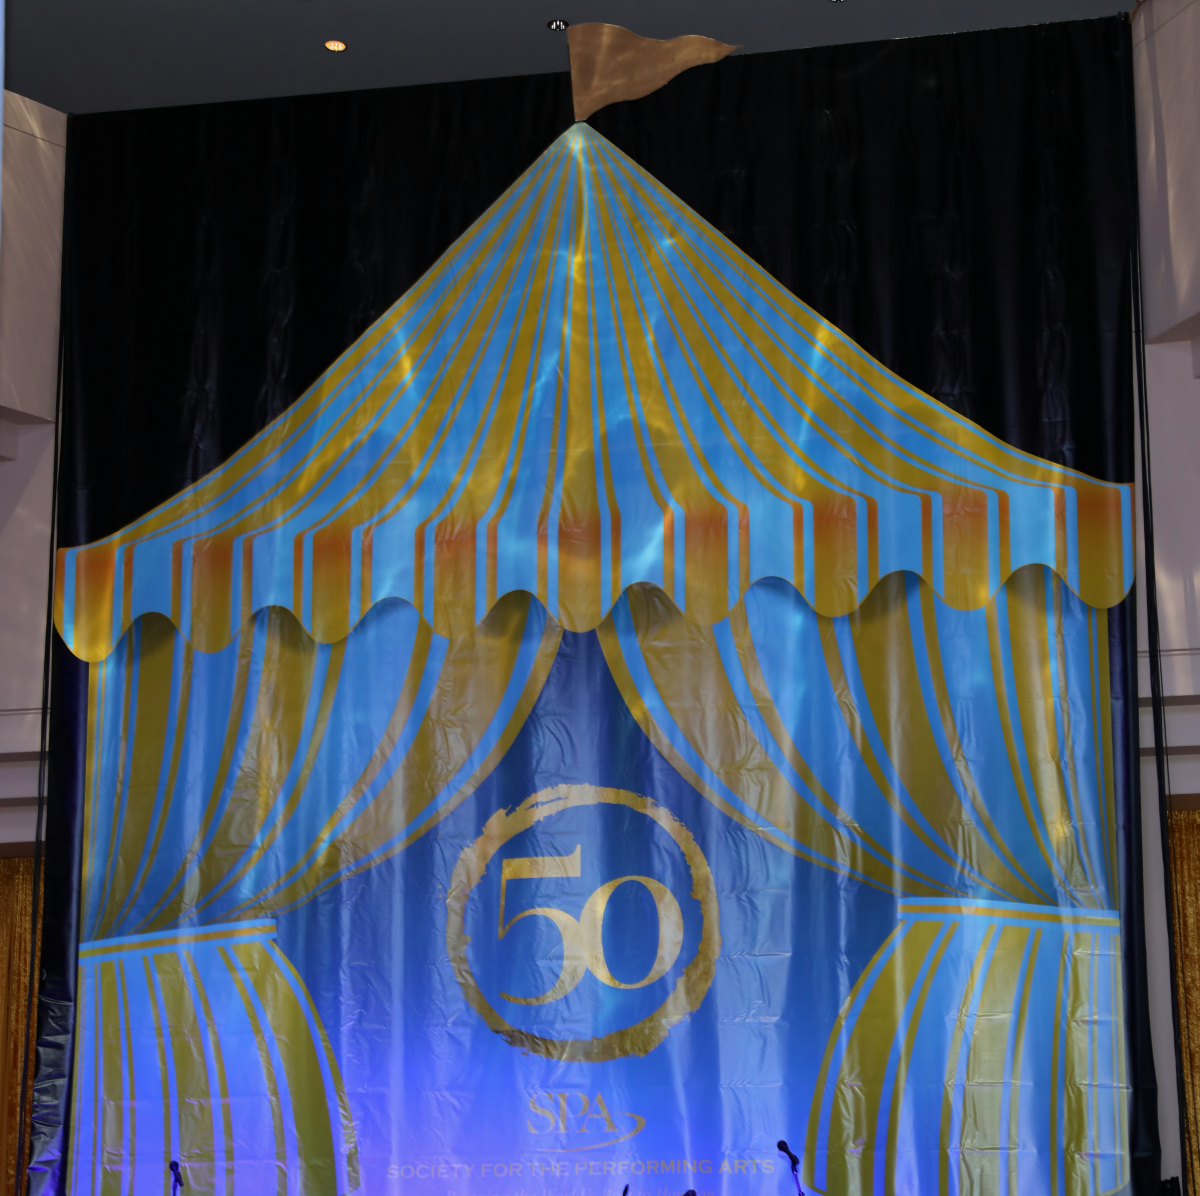 Houston, Society for the Performing Arts, April 2017, the big top behind the stage